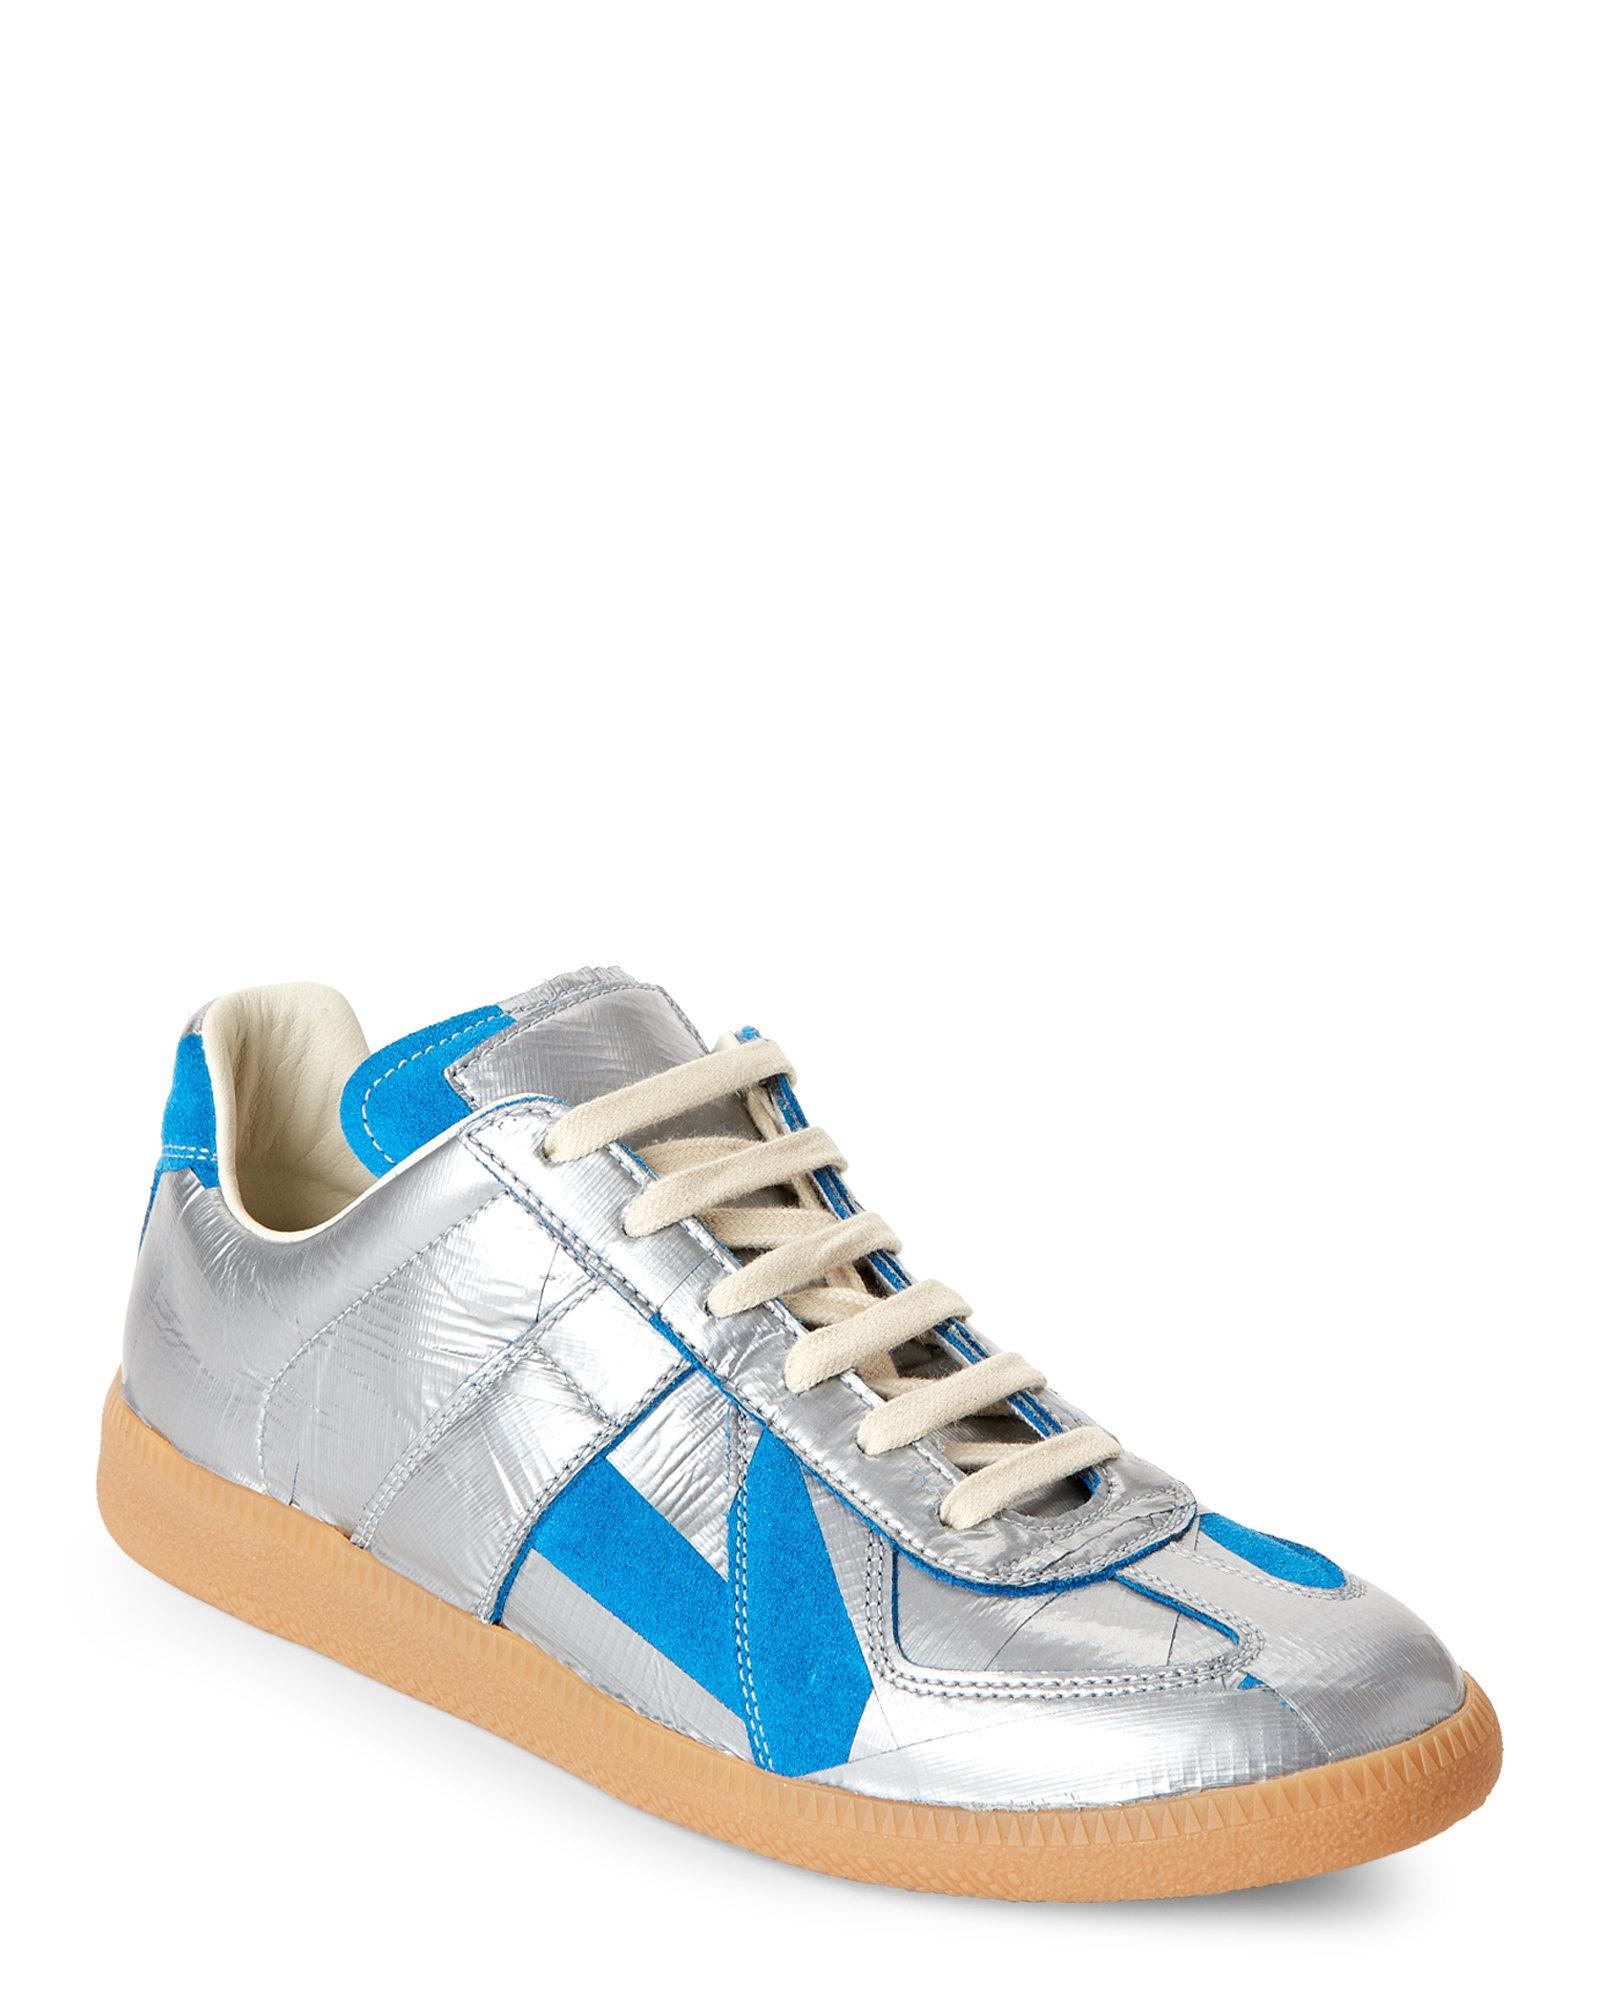 Replica Runner sneakers - Blue Maison Martin Margiela Buy Cheap Best Countdown Package Cheap Online Buy Cheap Affordable New Lower Prices yWGlGe6N